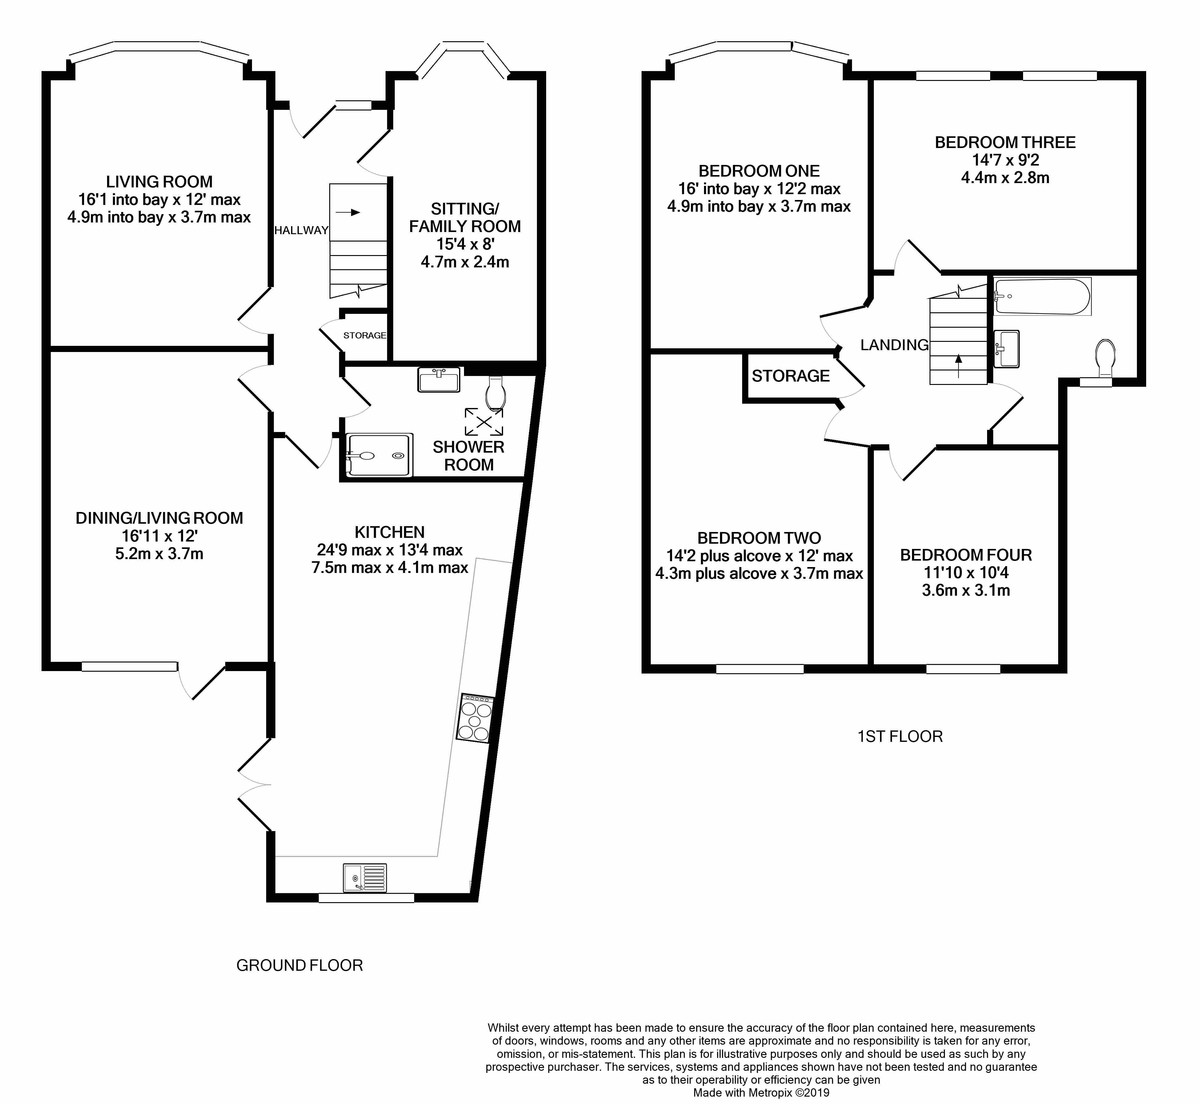 Wheatsheaf Road, Edgbaston floorplan 1 of 1